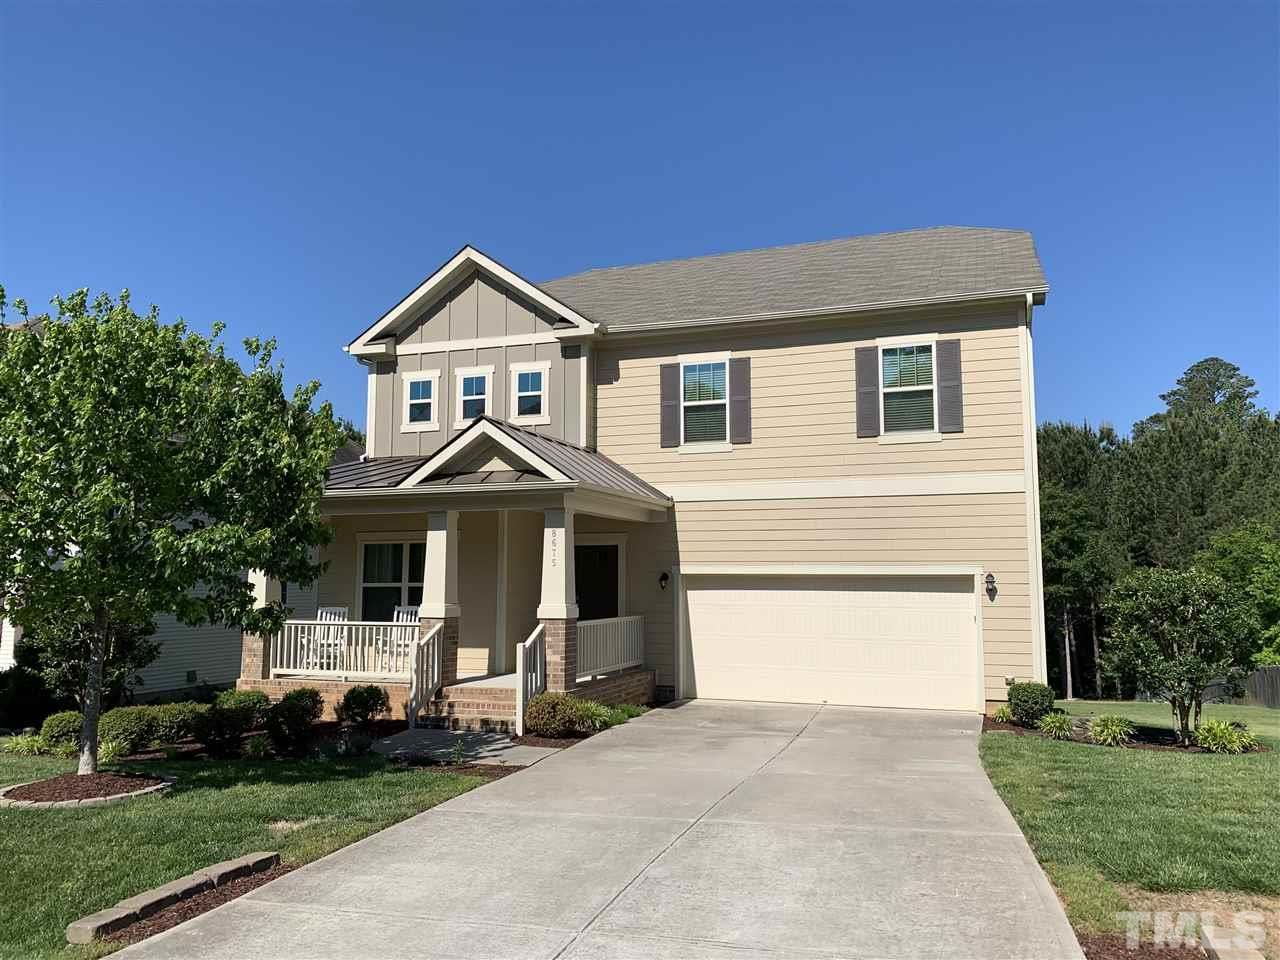 8675 Forester Lane, Cary, NC 27539 - MLS#: 2317420